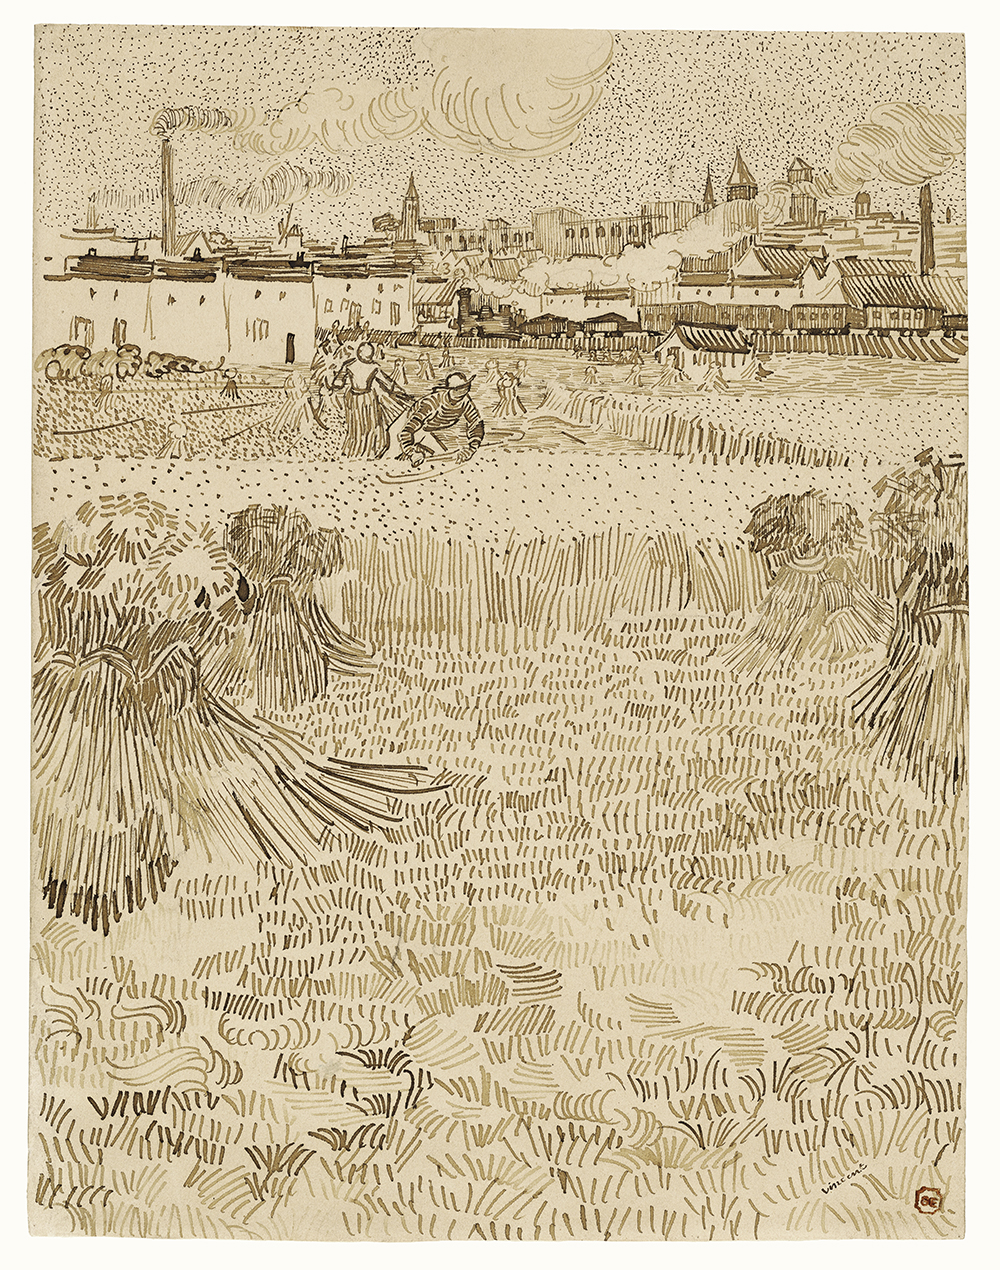 Arles: View from the Wheatfields (1888) by Vincent Van Gogh. Original from the J. Paul Getty Museum. CC0